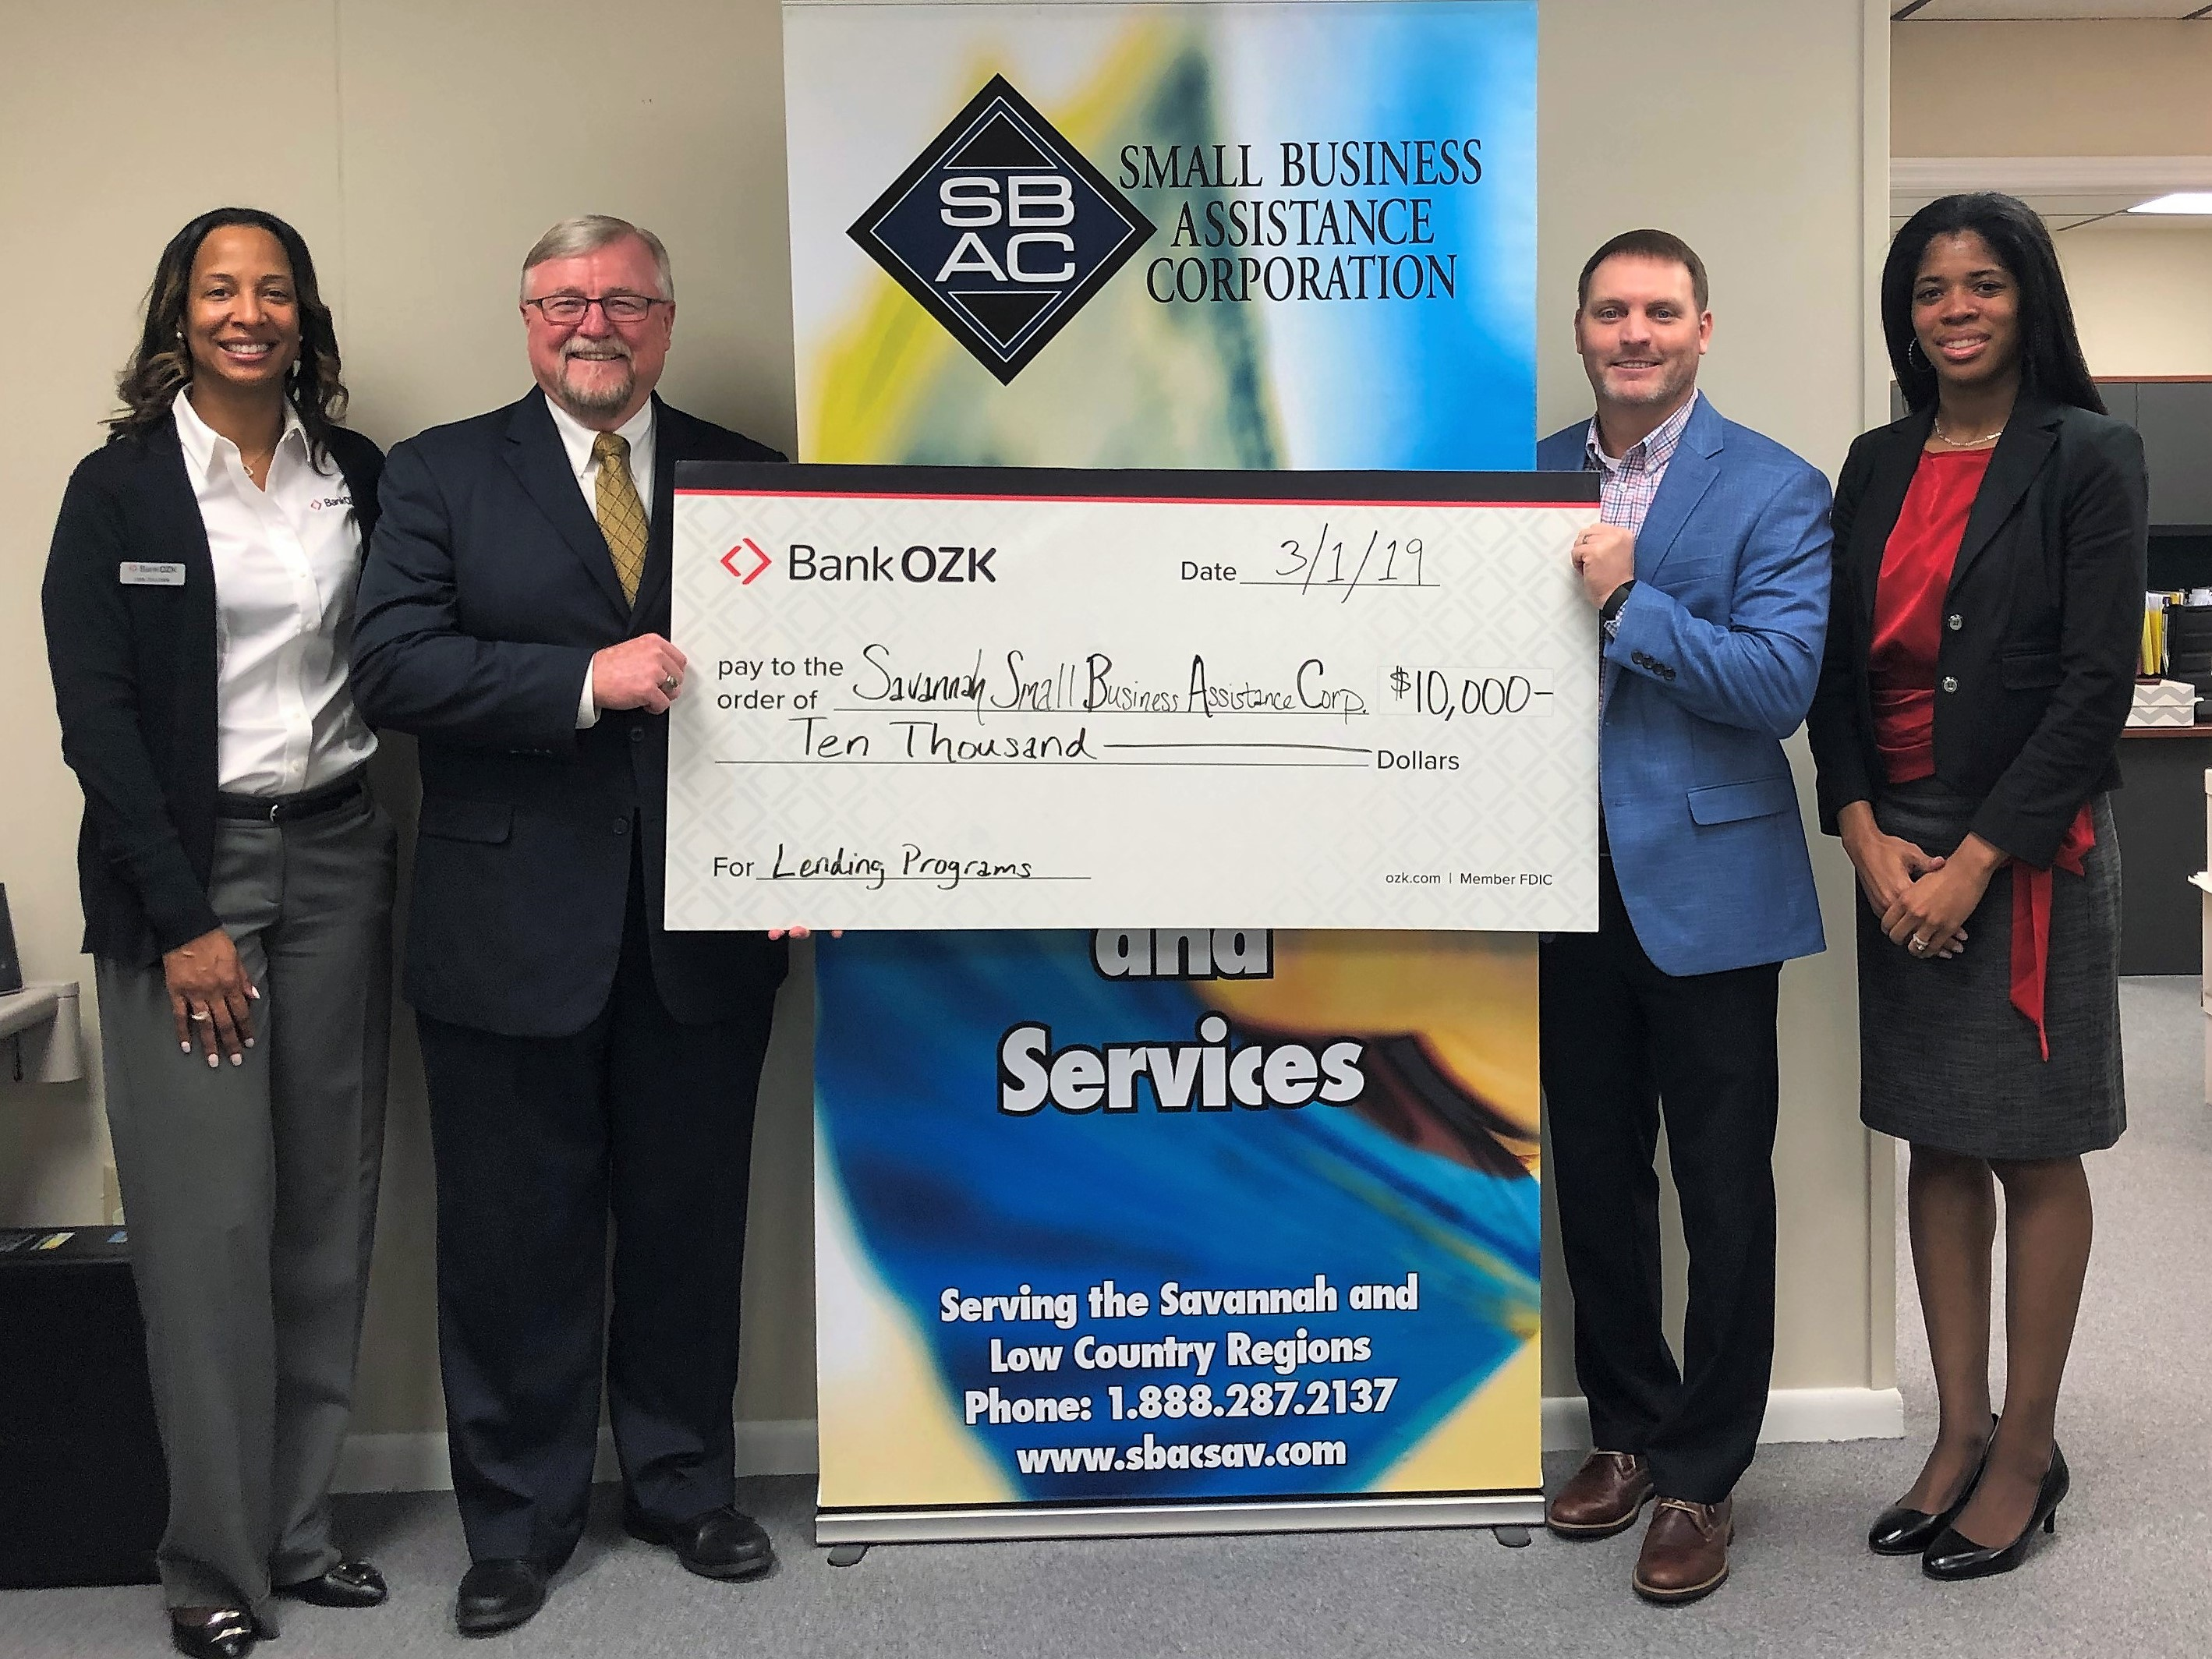 Bank OZK Presents $10,000 Check to Small Business Assistance Corporation